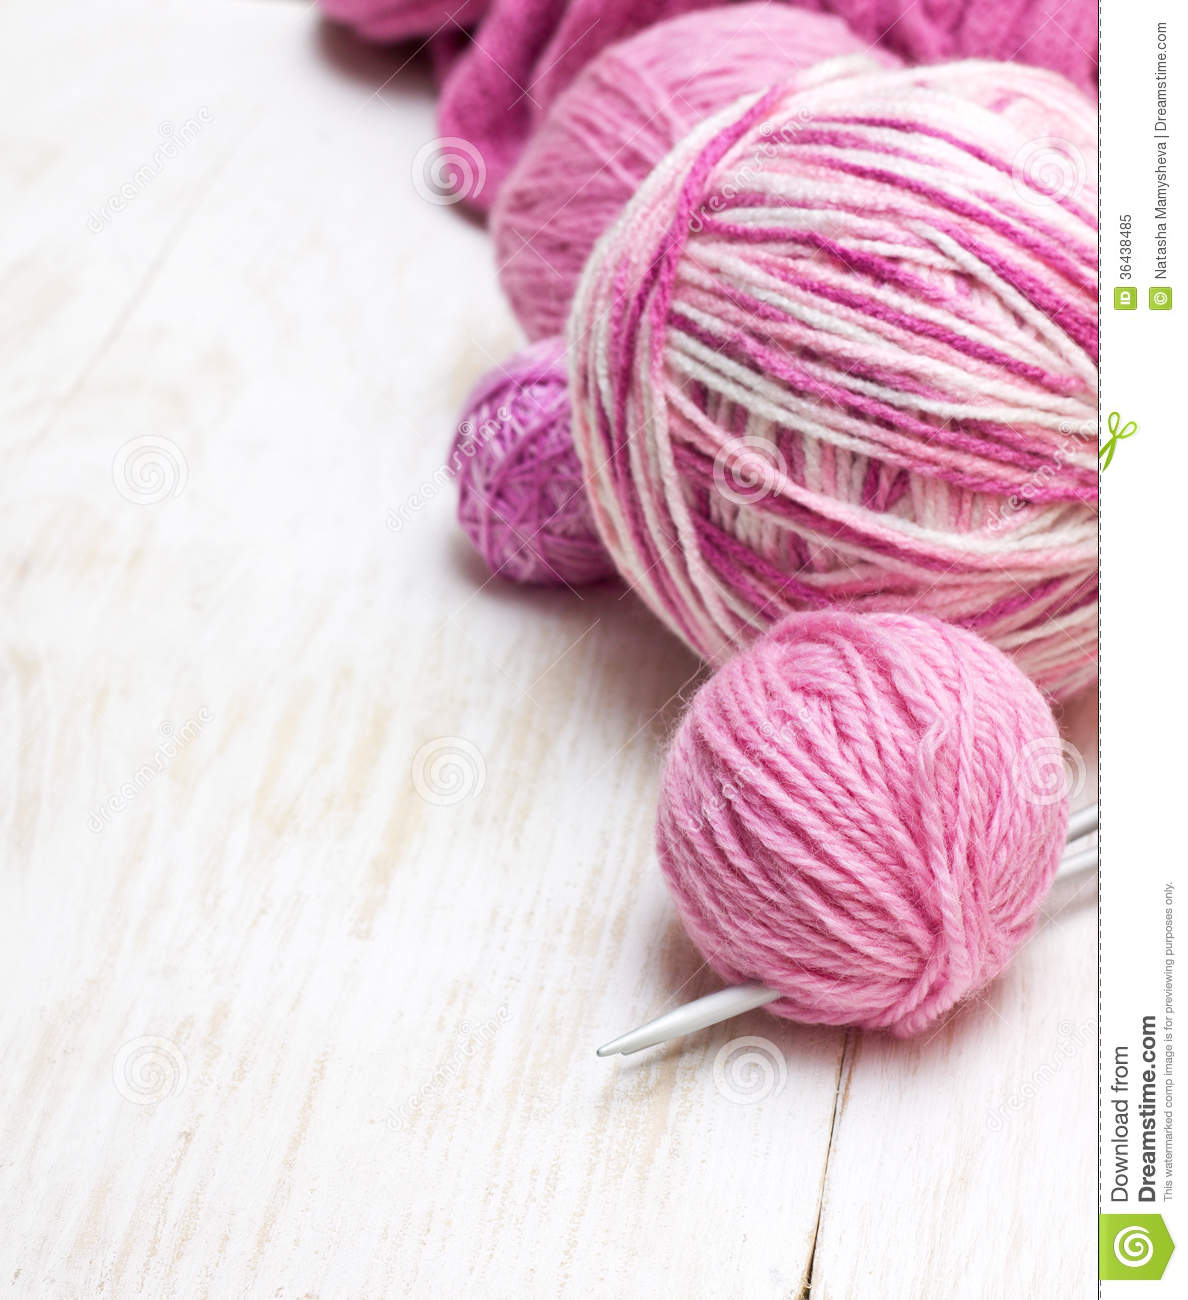 Beginning Inventory for Opening a Yarn Shop